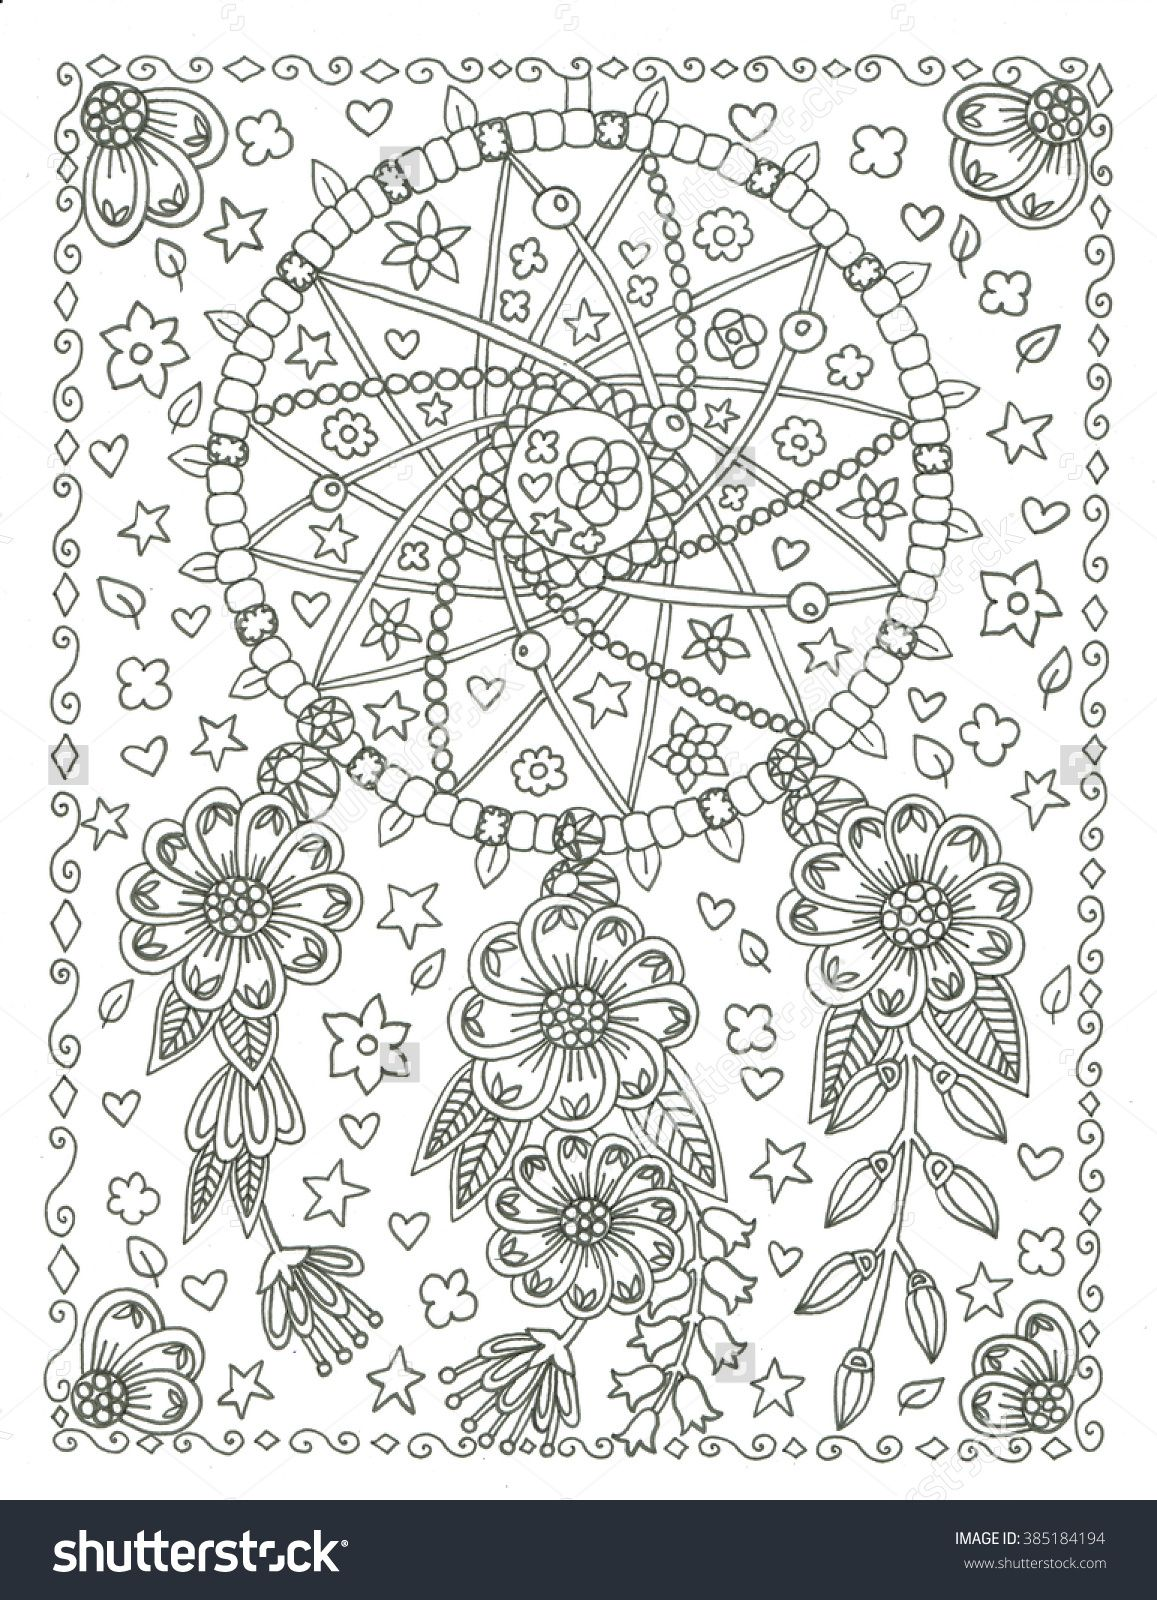 Dream catcher coloring page Zentangles